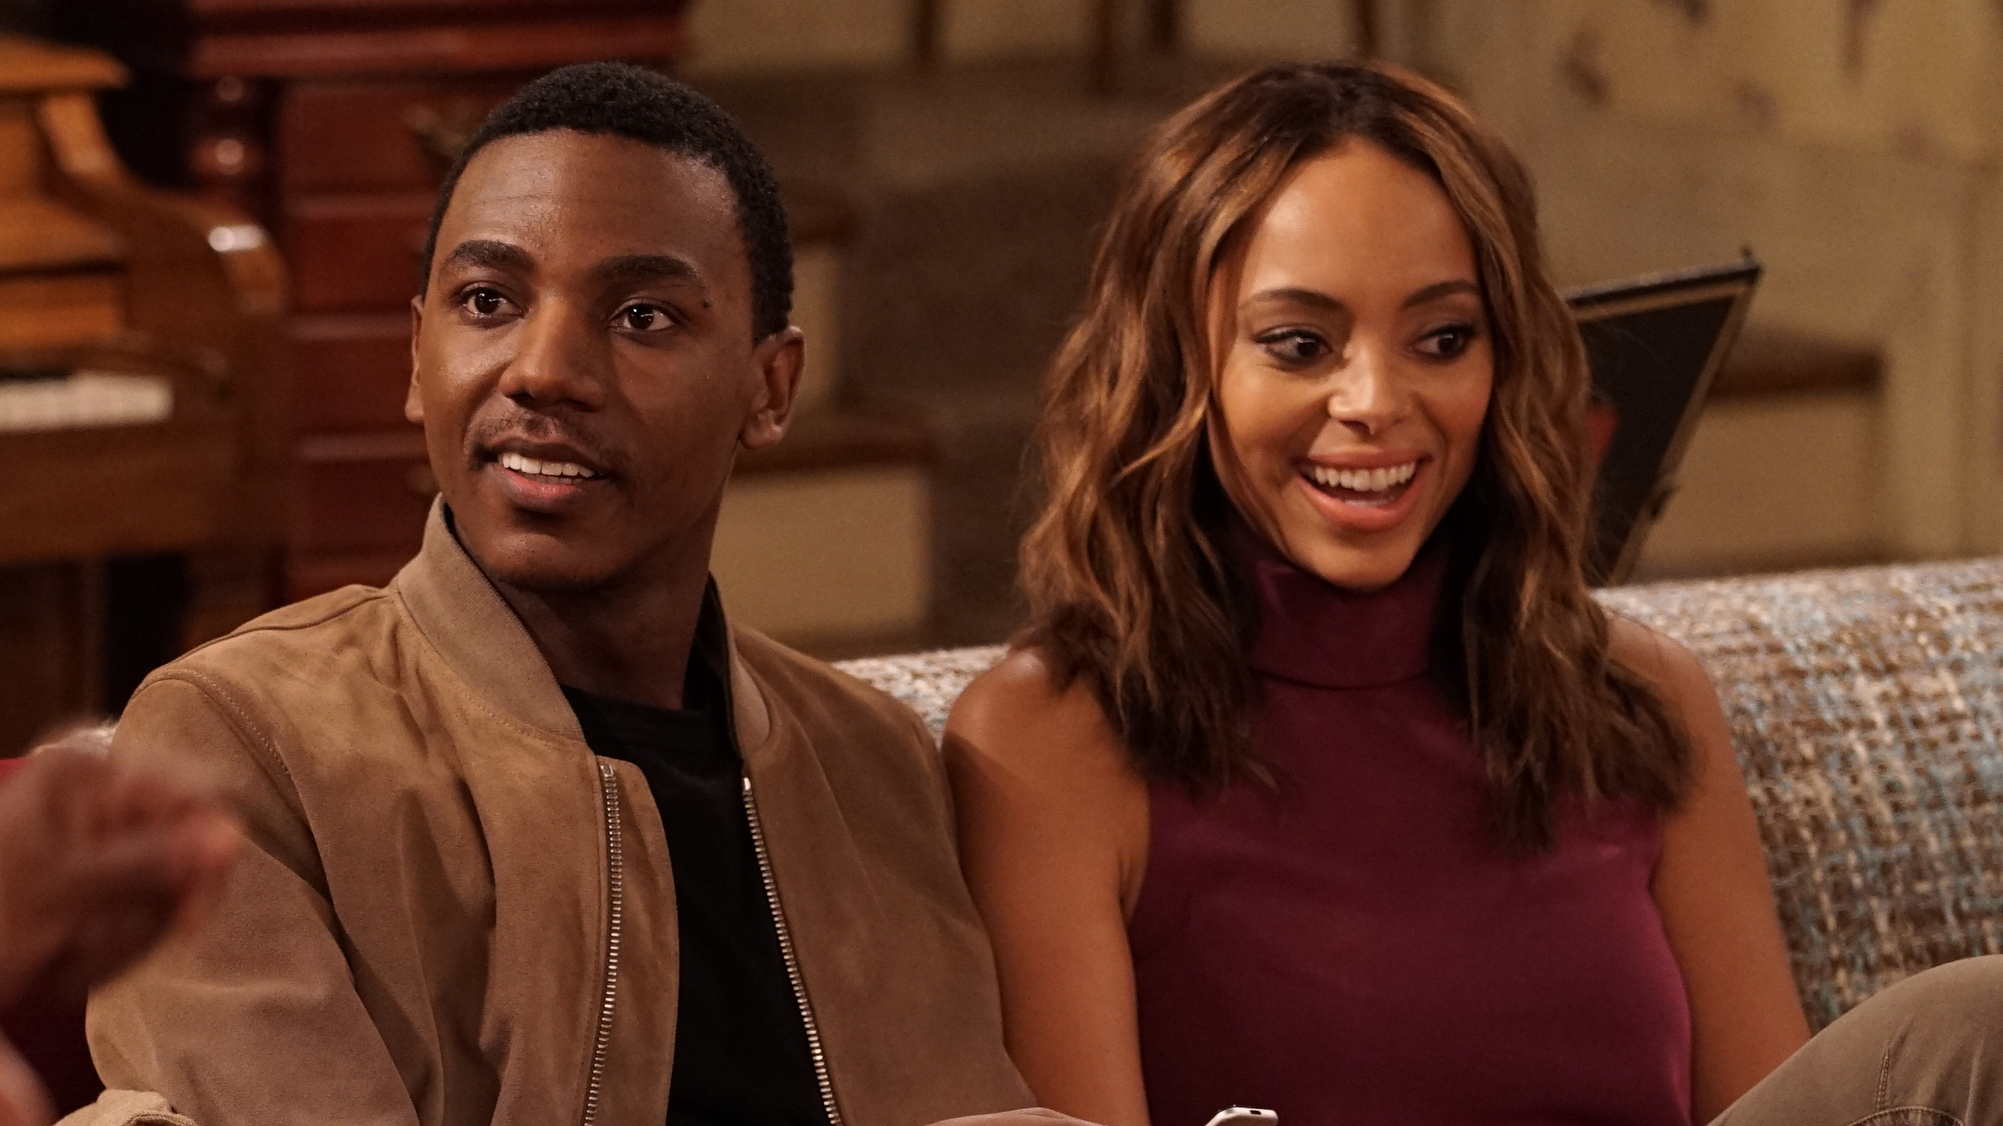 Jerrod Carmichael Joins Emma Stone in Yorgos Lanthimos' 'Poor Things, Mark Ruffalo also join! Other Famous celebs too!! Find Out